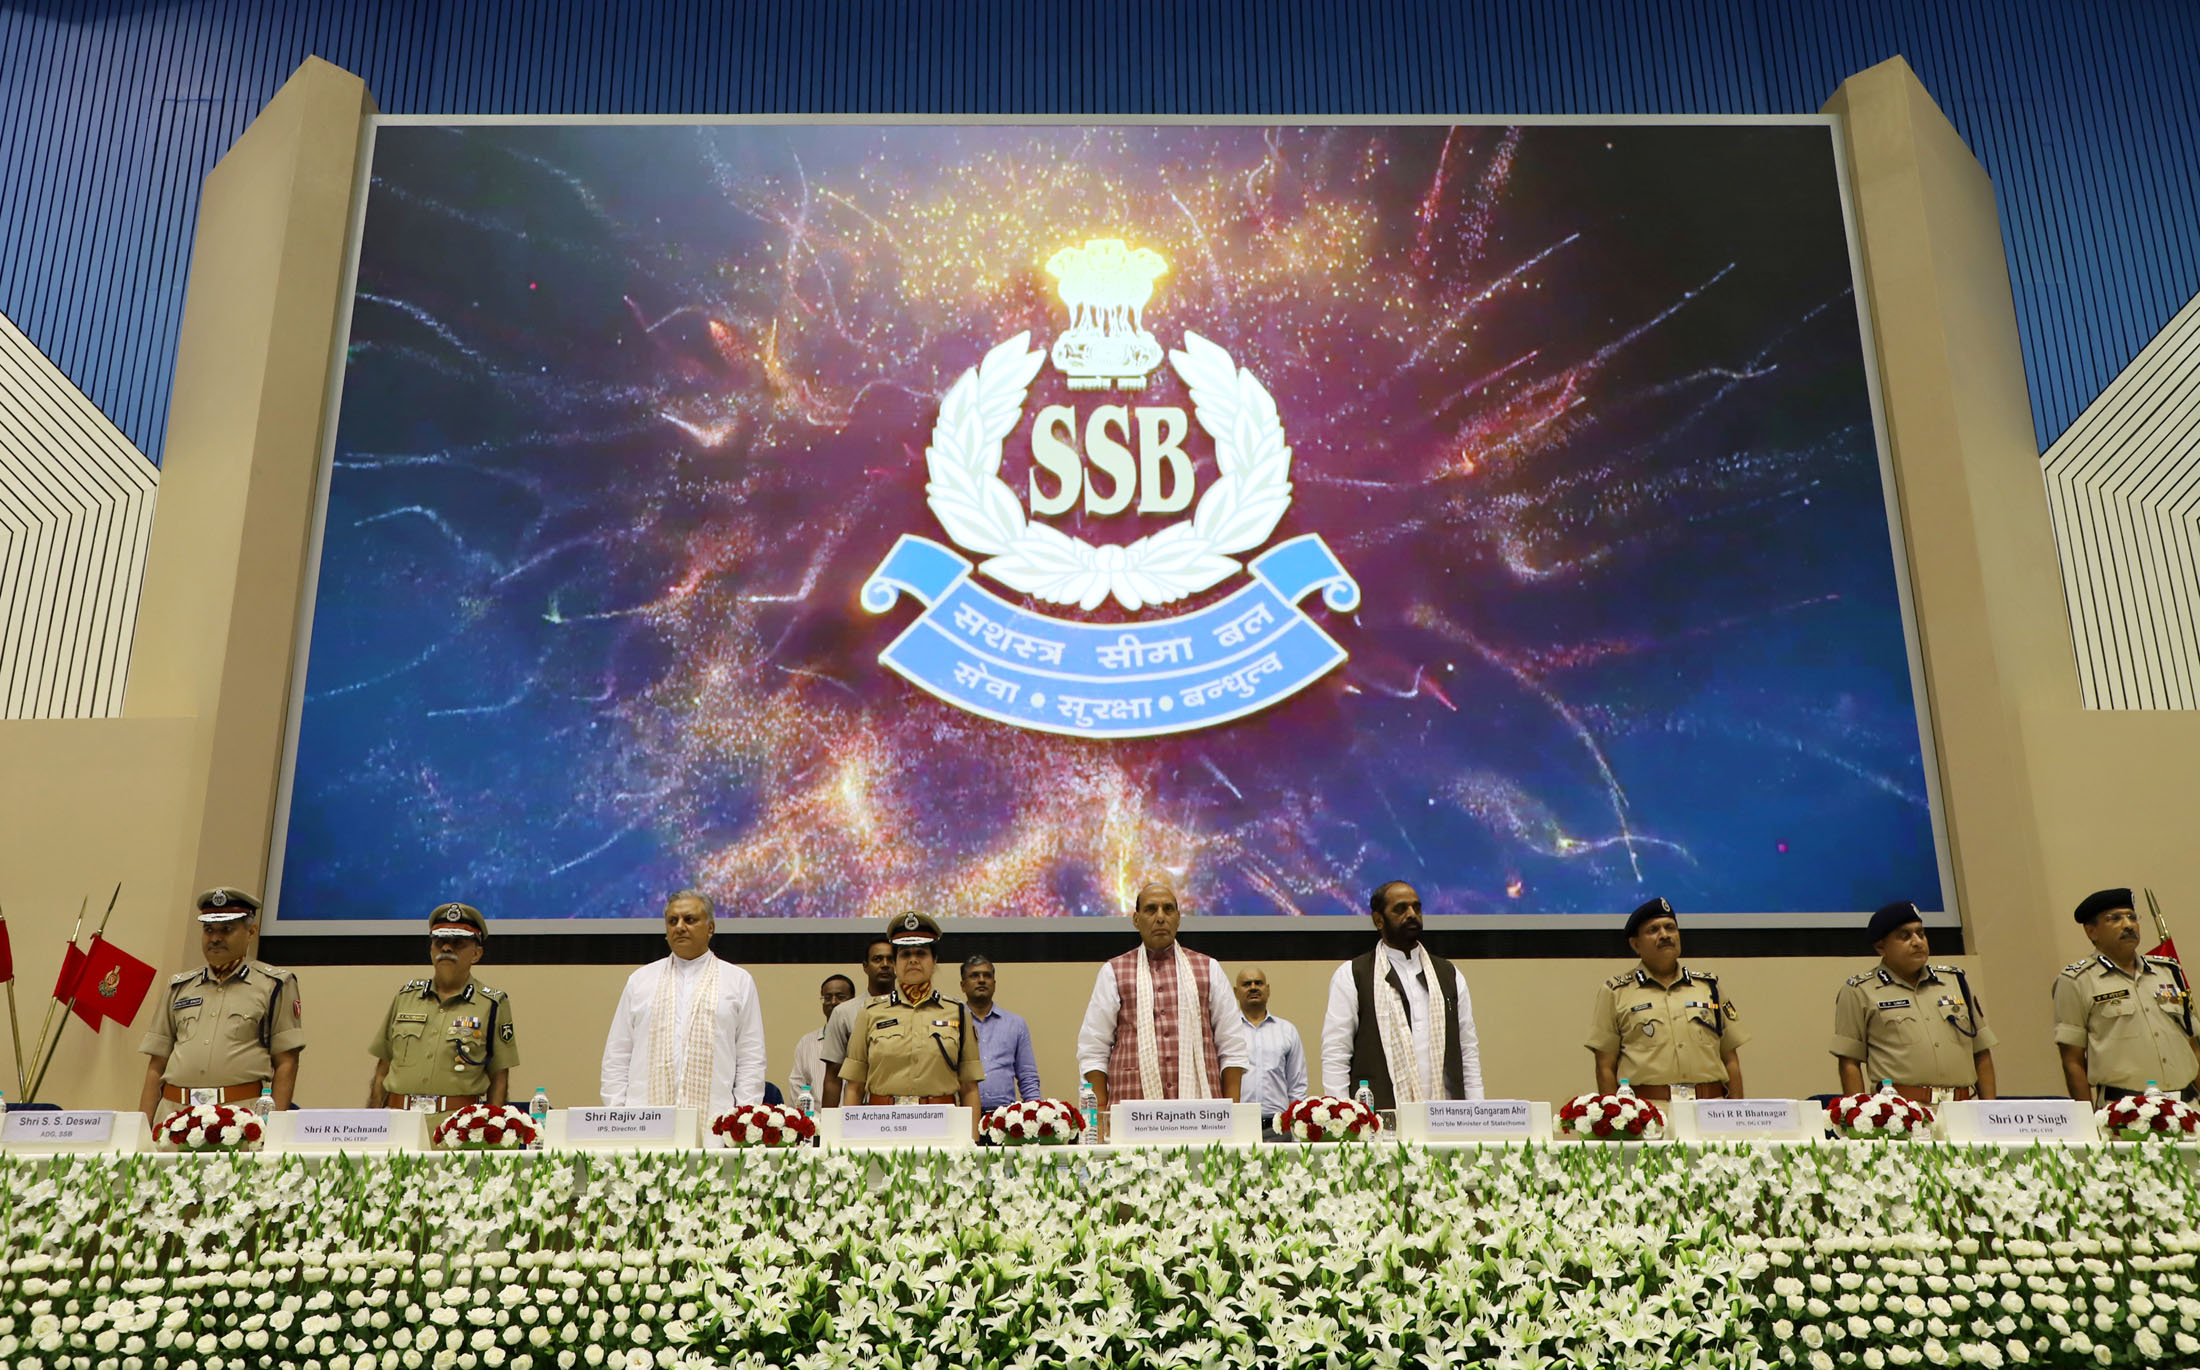 The Union Home Minister, Shri Rajnath Singh during a function to operationalise the New Intelligence Set-up of the Sashastra Seema Bal (SSB), in New Delhi on September 18, 2017. The Minister of State for Home Affairs, Shri Hansraj Gangaram Ahir, the Director, Intelligence Bureau, Shri Rajiv Jain, the DG, SBB, Smt. Archana Ramasundaram and DGs of other CAPFs are also seen.